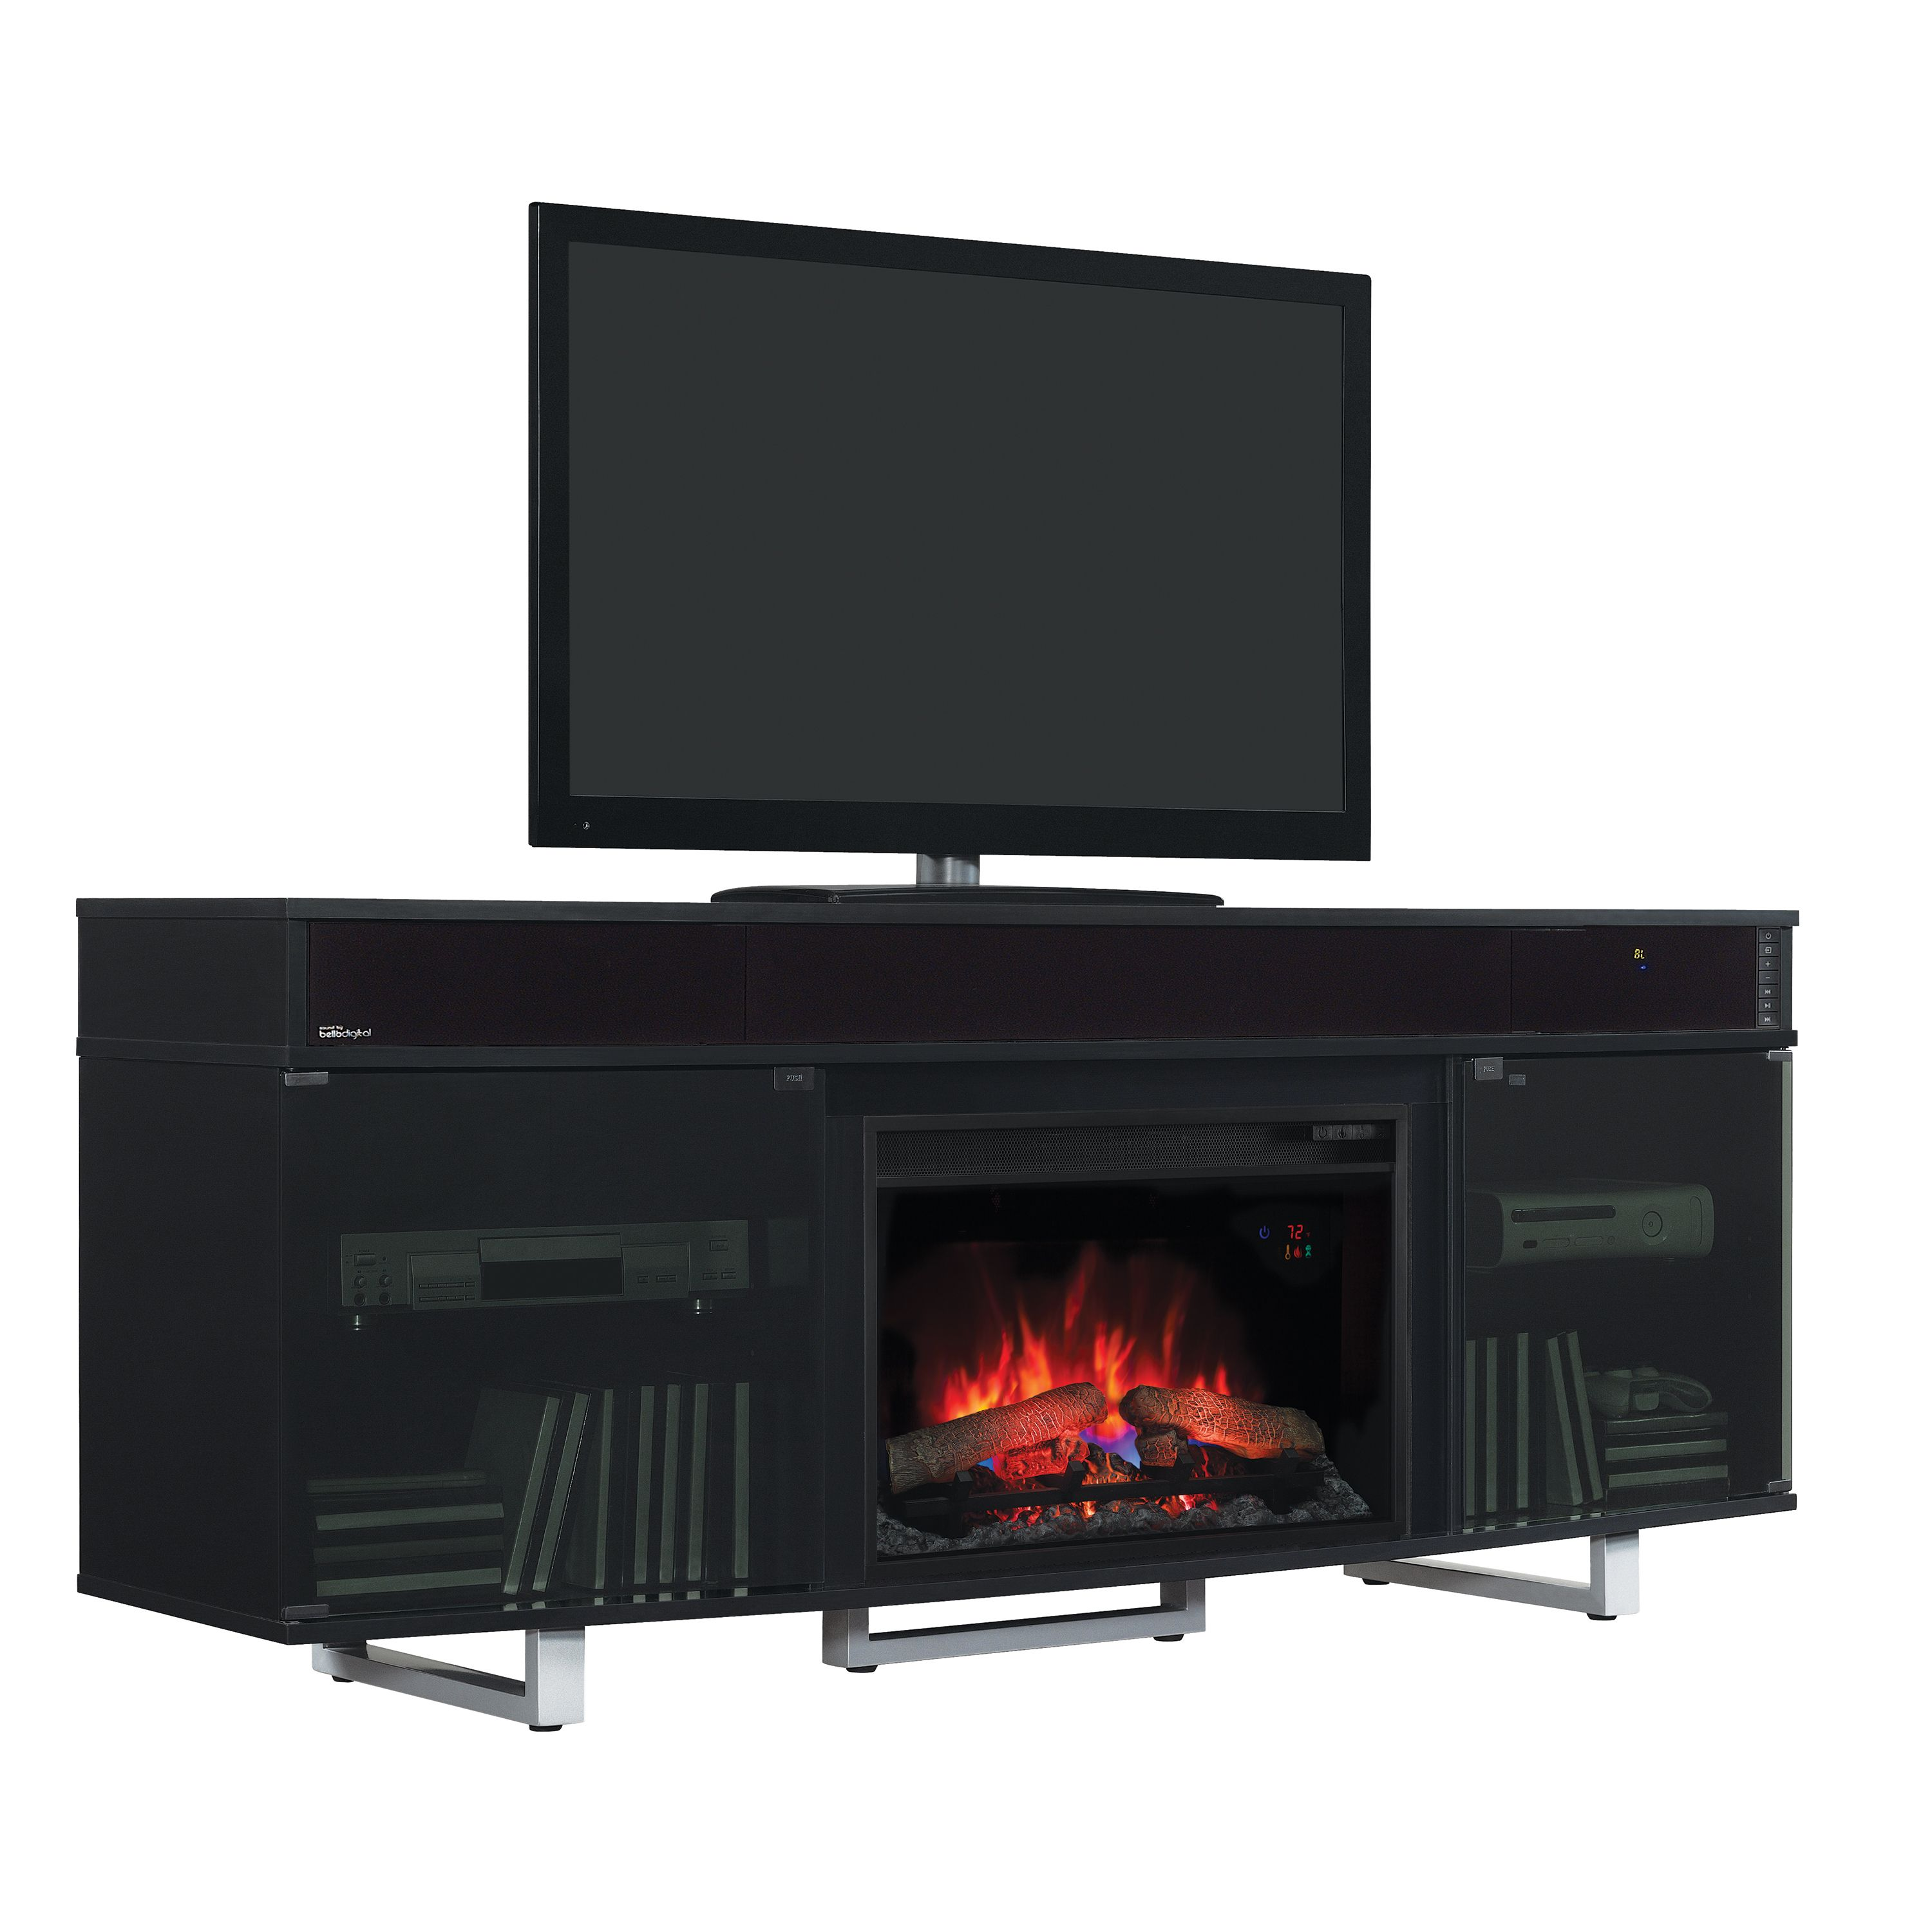 Star Enterprise Lite Contemporary TV Stand with 26-inch Electric Fireplace - Gloss